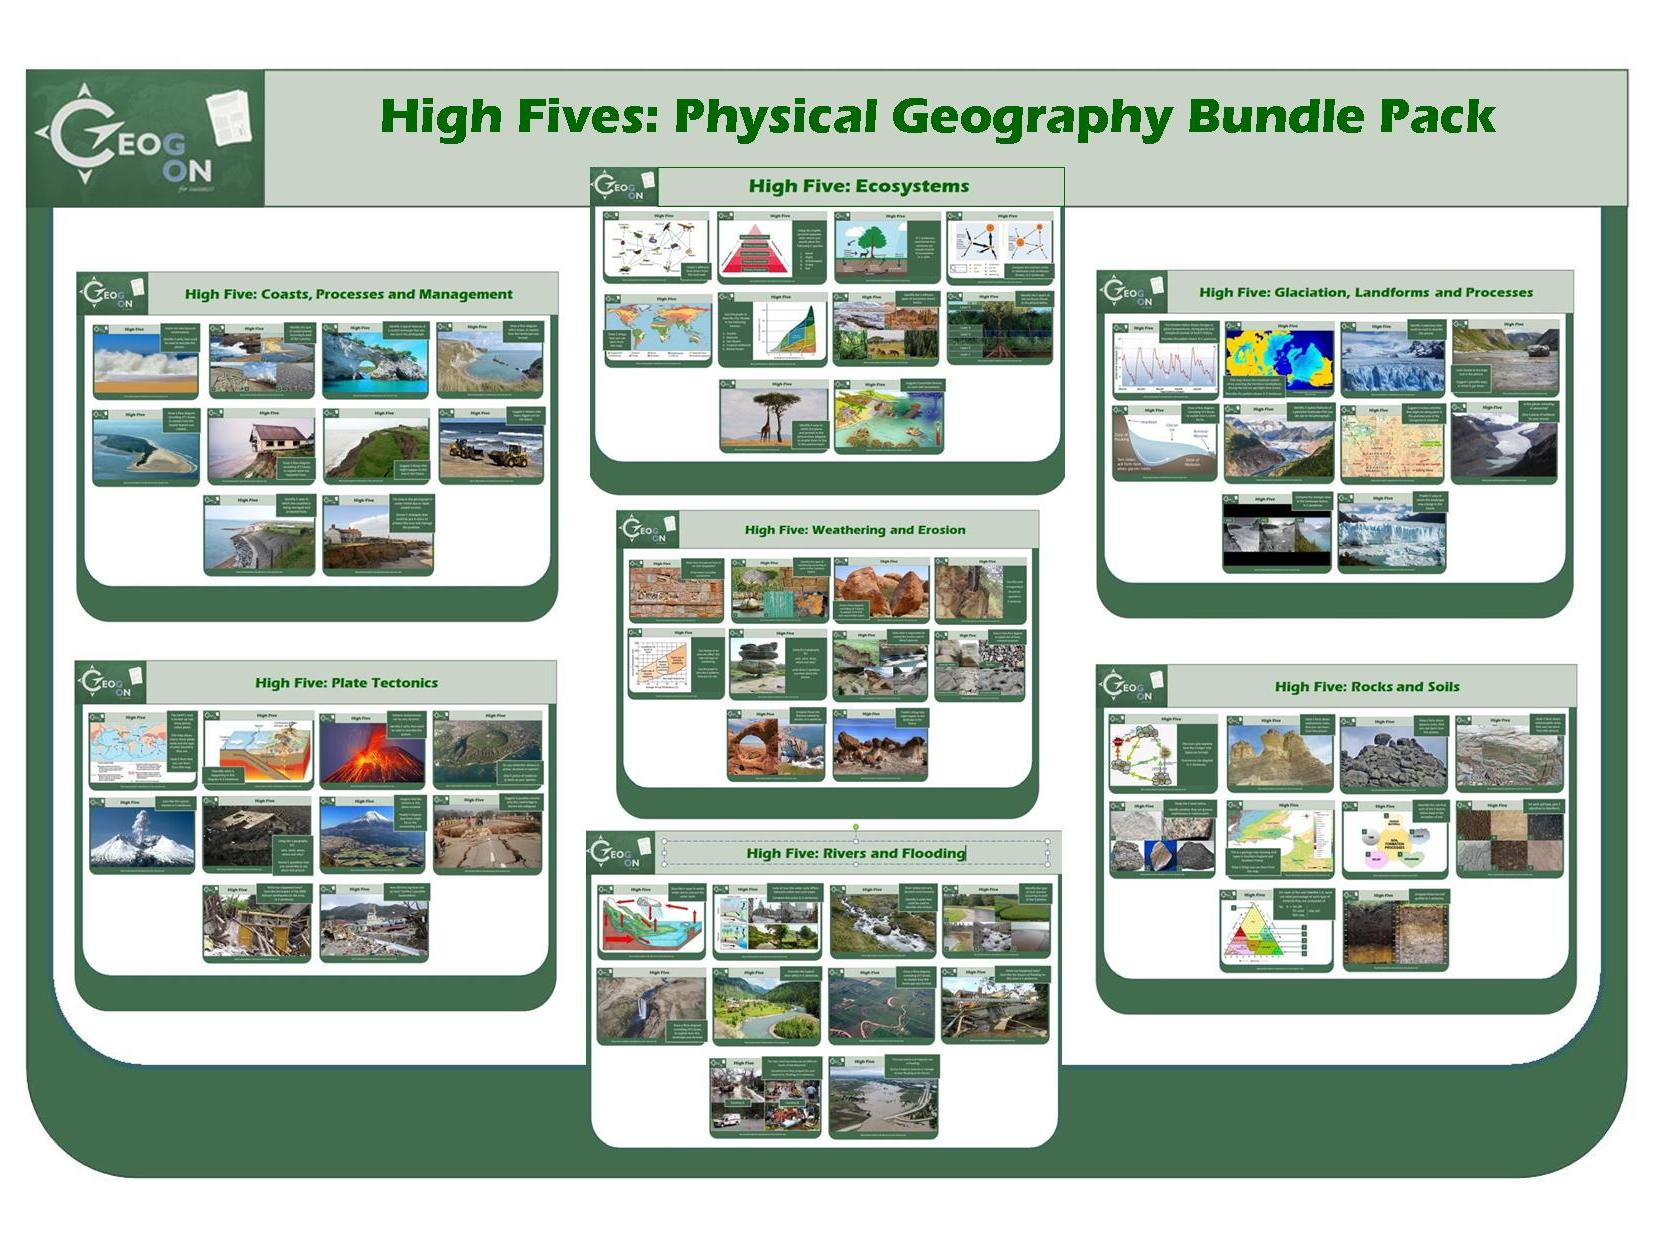 High Fives: Physical Geography Bundle Pack (7 Resources inc. 2 FREE packs!)